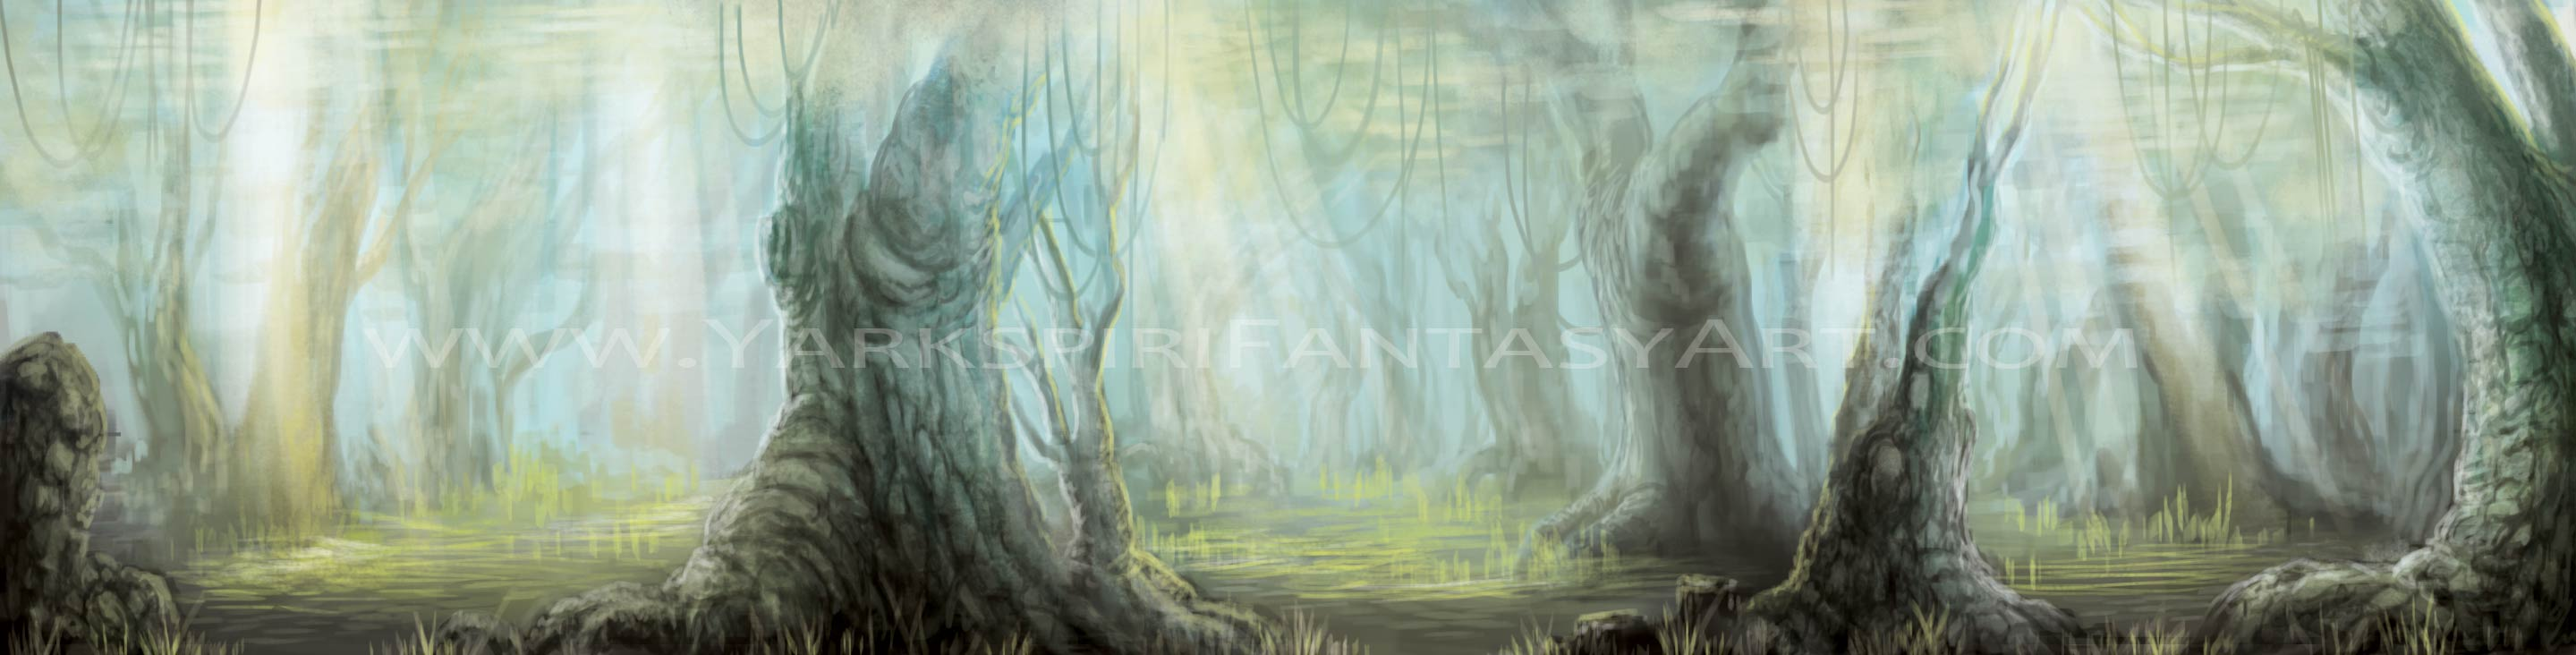 Swamp Background Concept